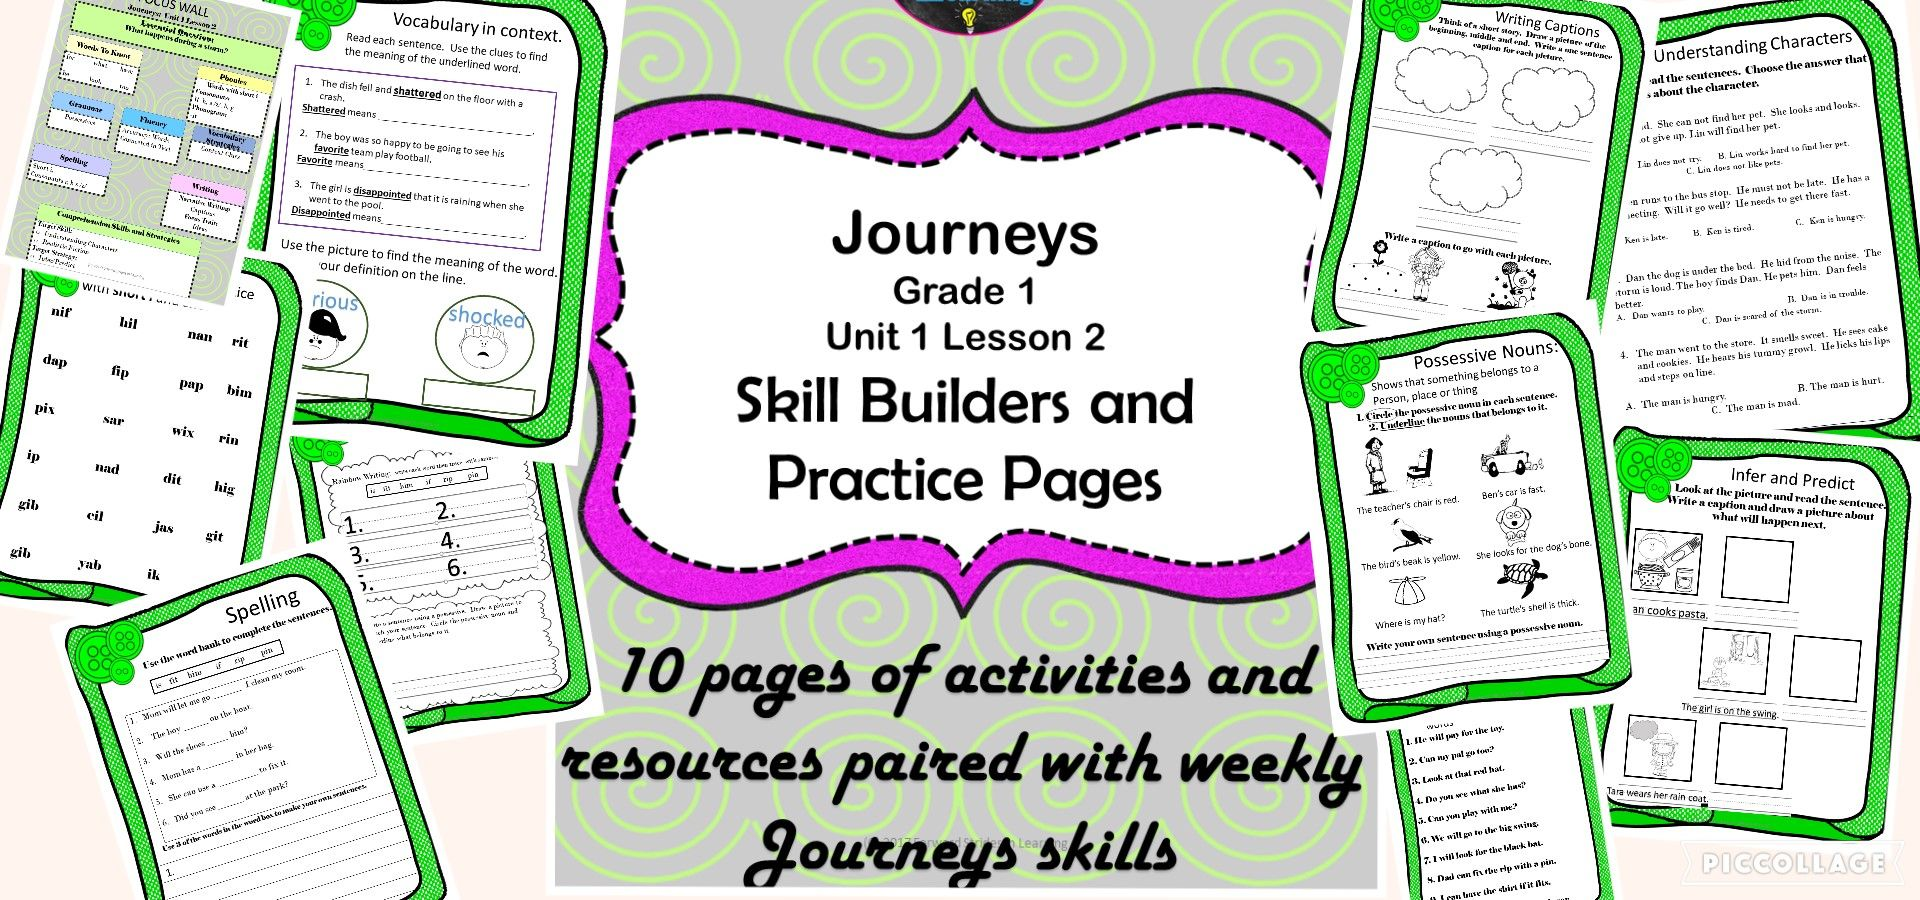 Journeys Based Activity Pages And Skill Builders Grade 1